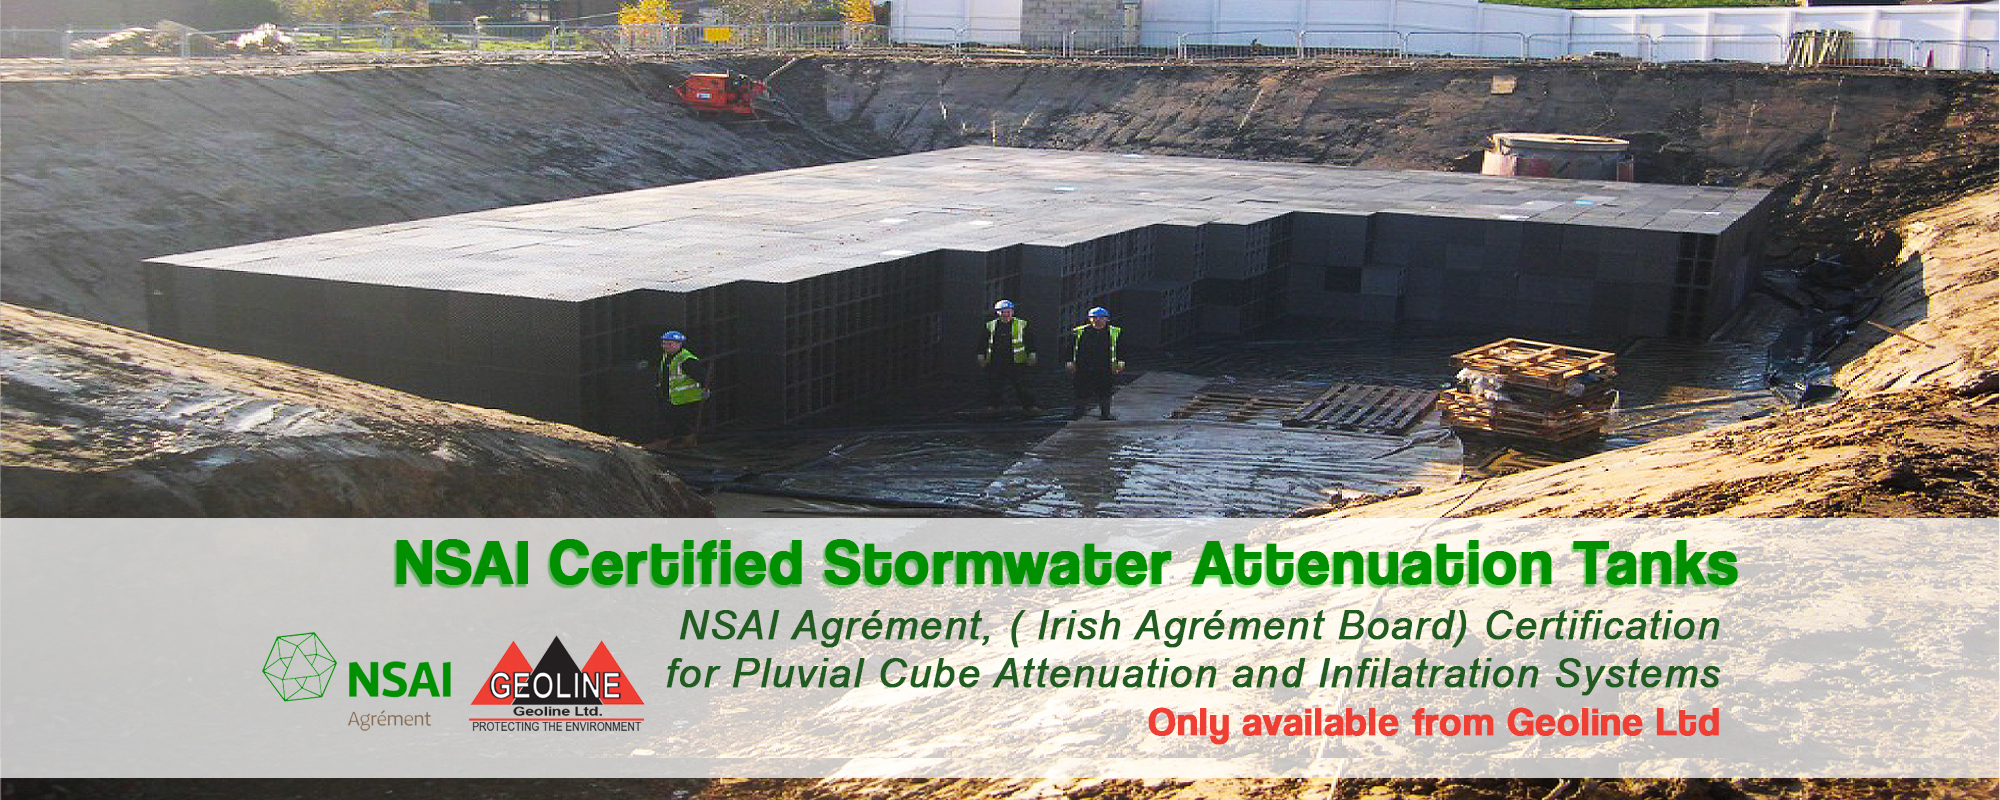 geoline-nsai-certified-storm-water-attenuation-tanks-final